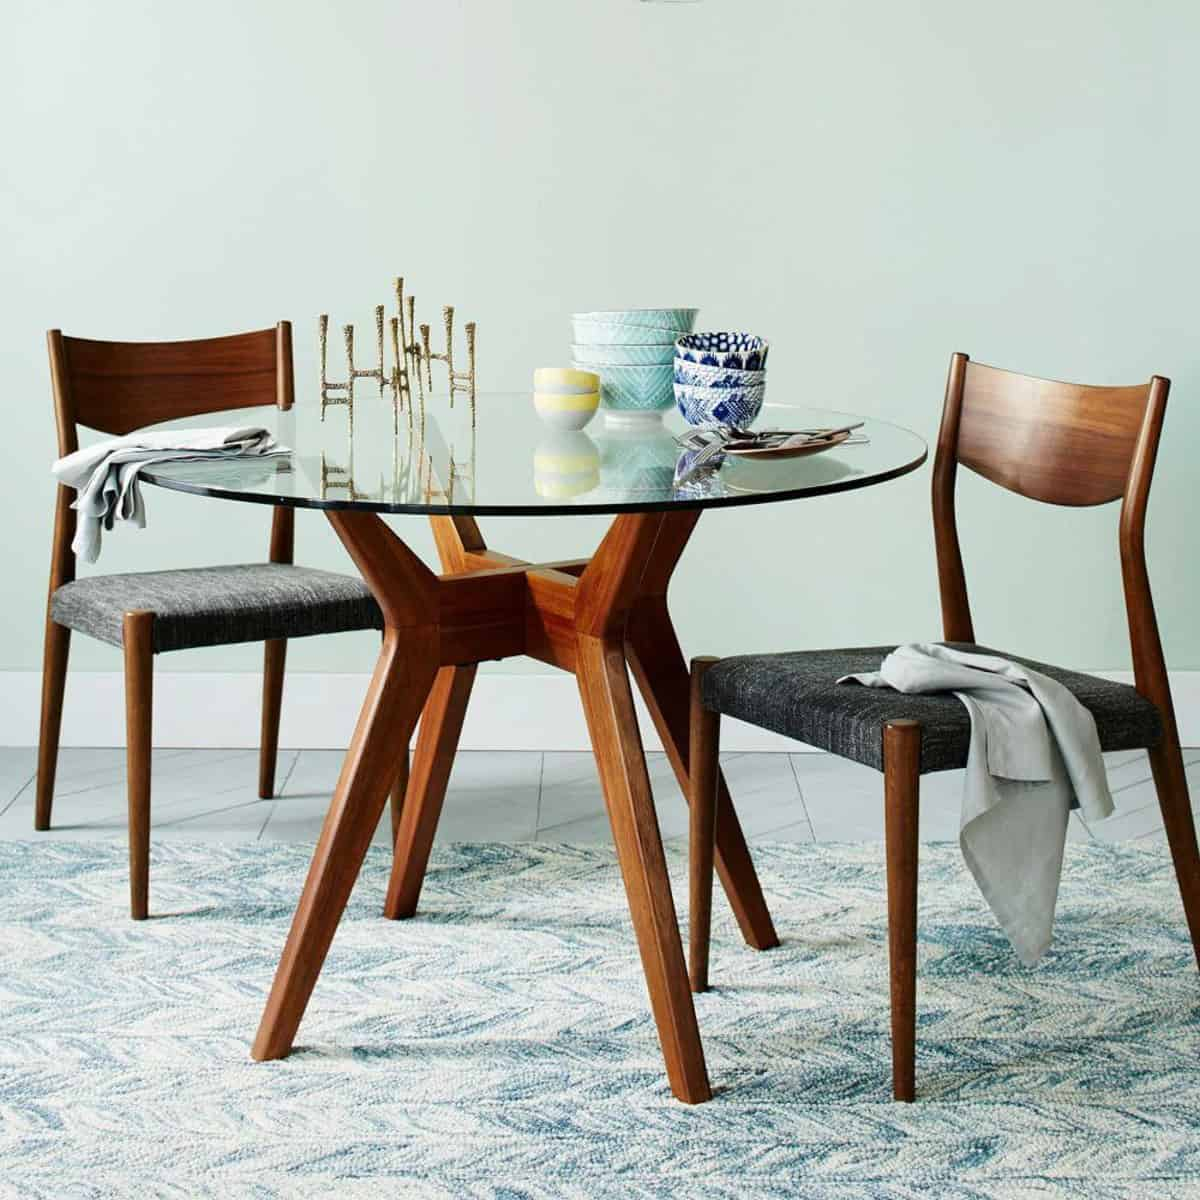 15 Round Glass Dining Room Tables That Add Sophistication